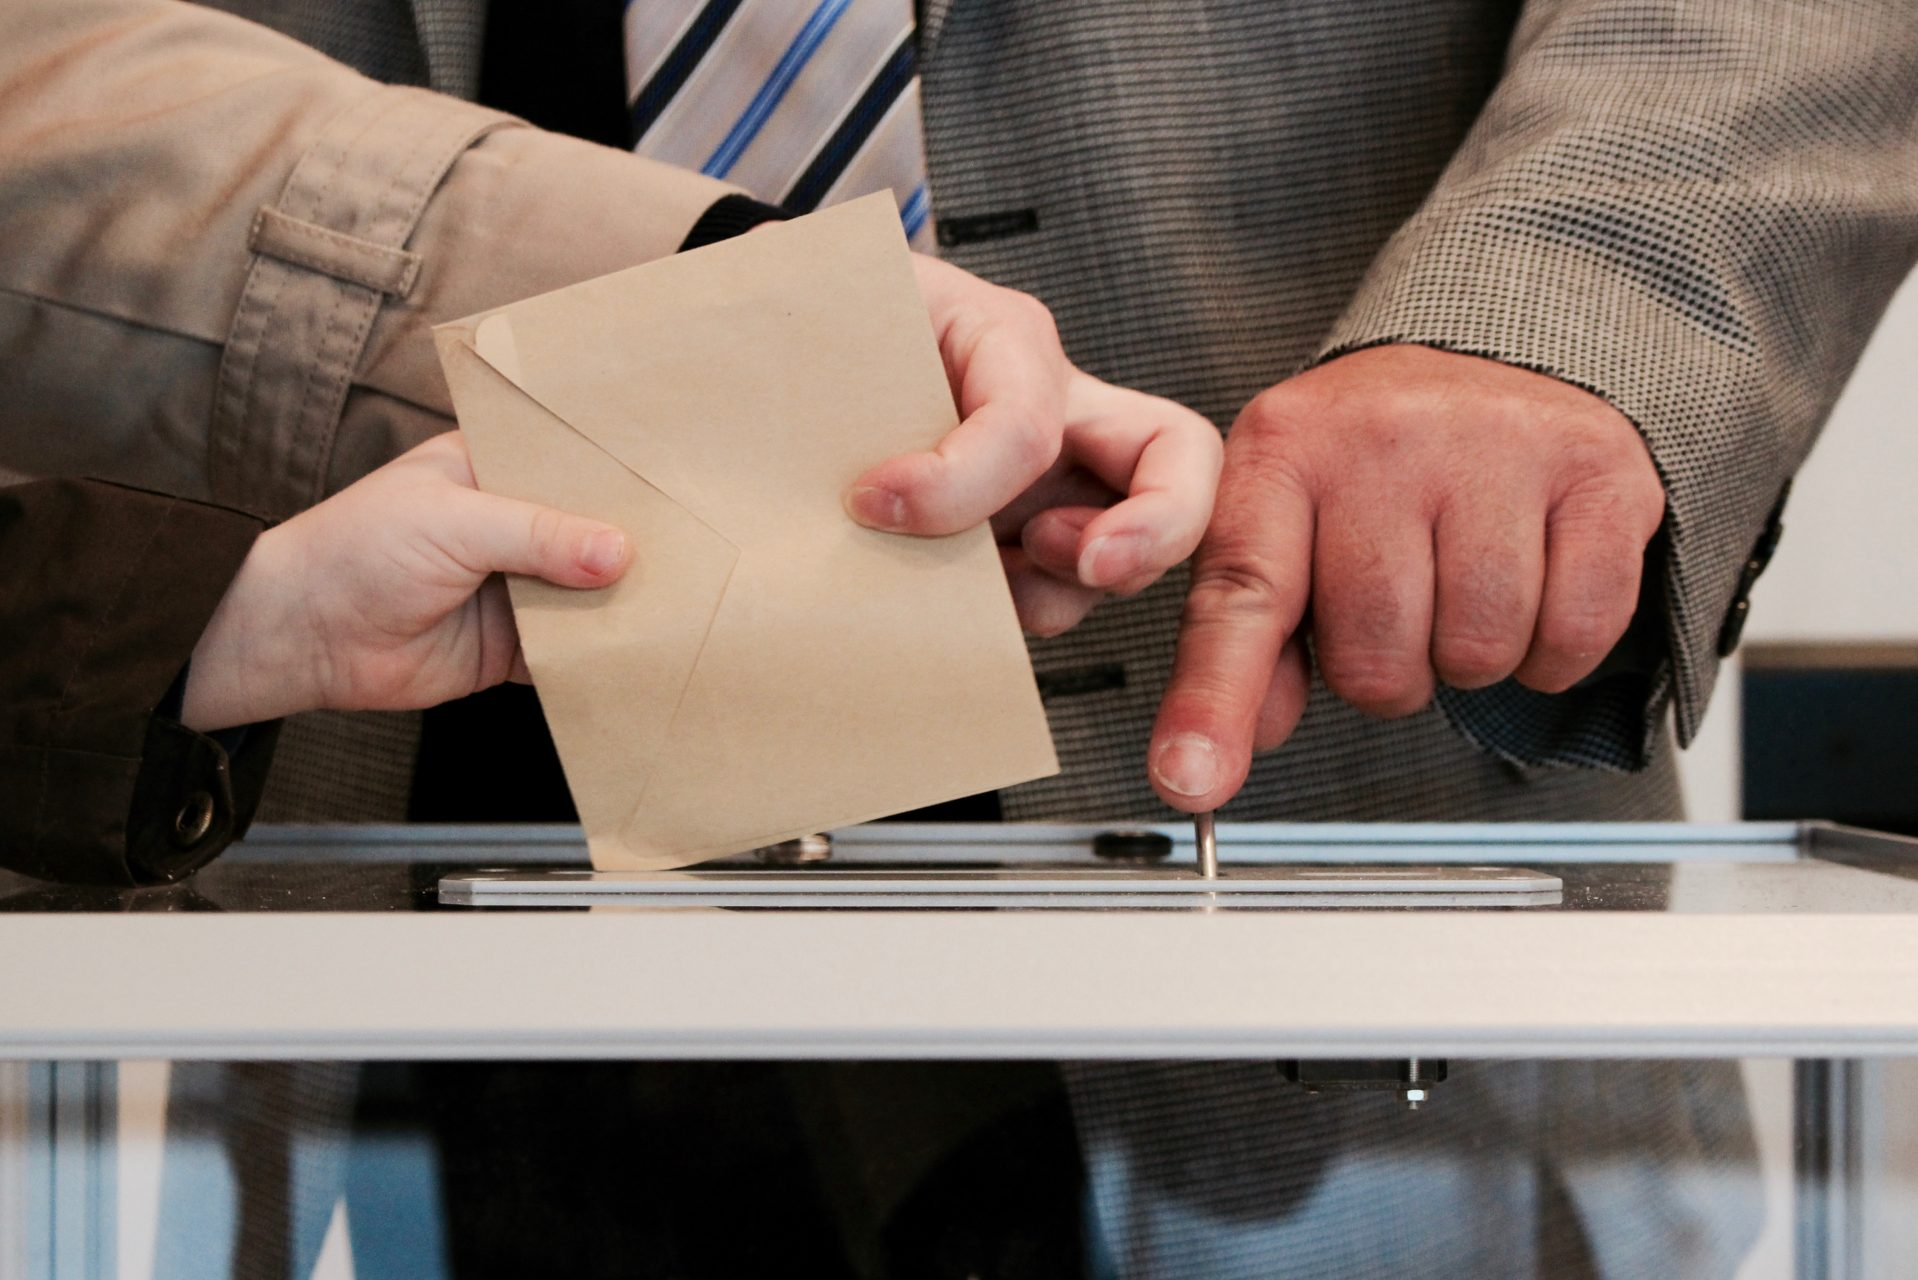 Hands of a man casting a vote